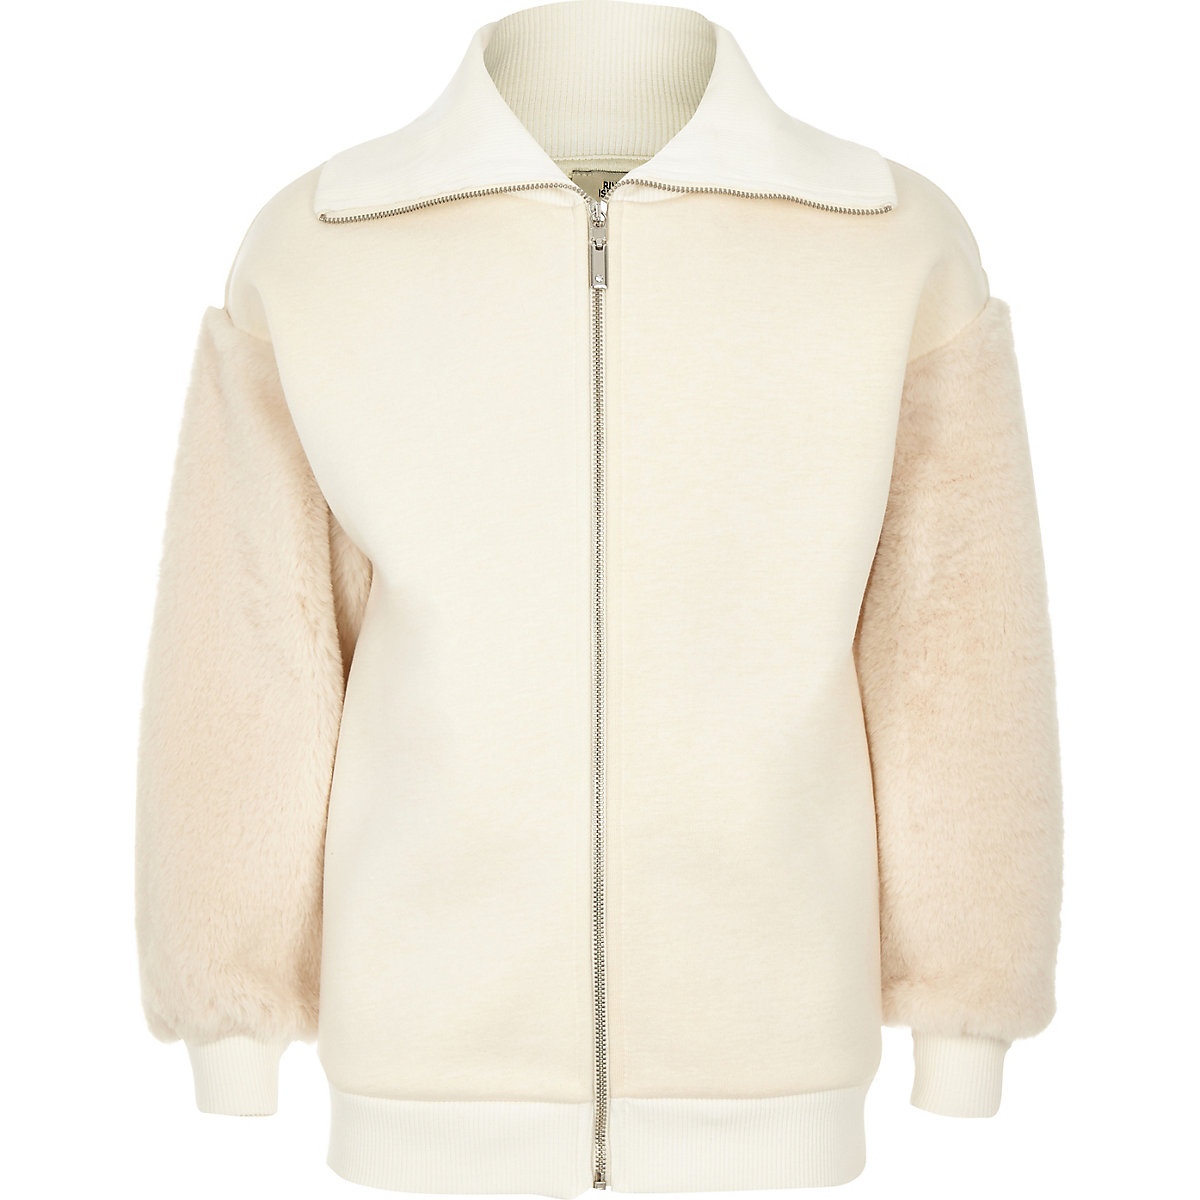 Girls cream faux fur trim zip-up sweatshirt